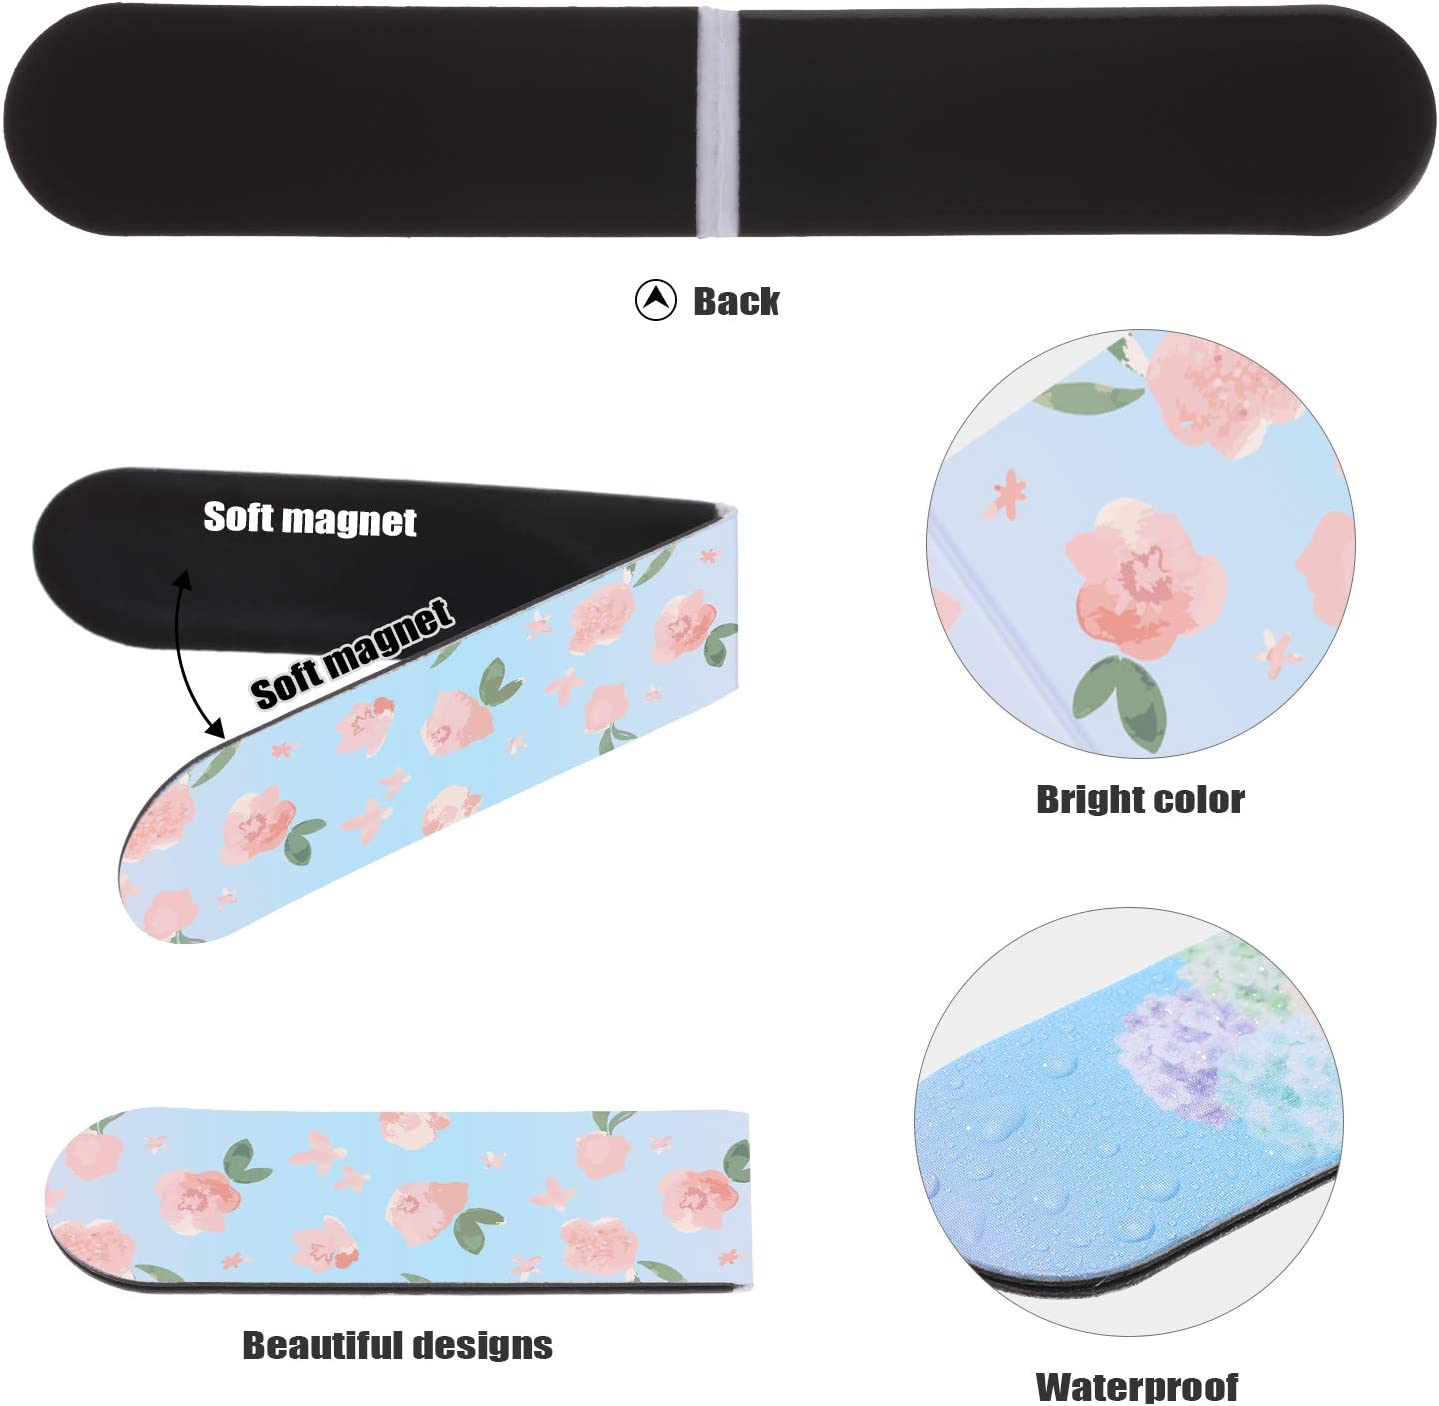 48 Pieces Floral Magnetic Bookmarks Cute Magnet Page Markers Magnetic Page Clips for Kids Adults Reading Stationery 16 Colorful Design